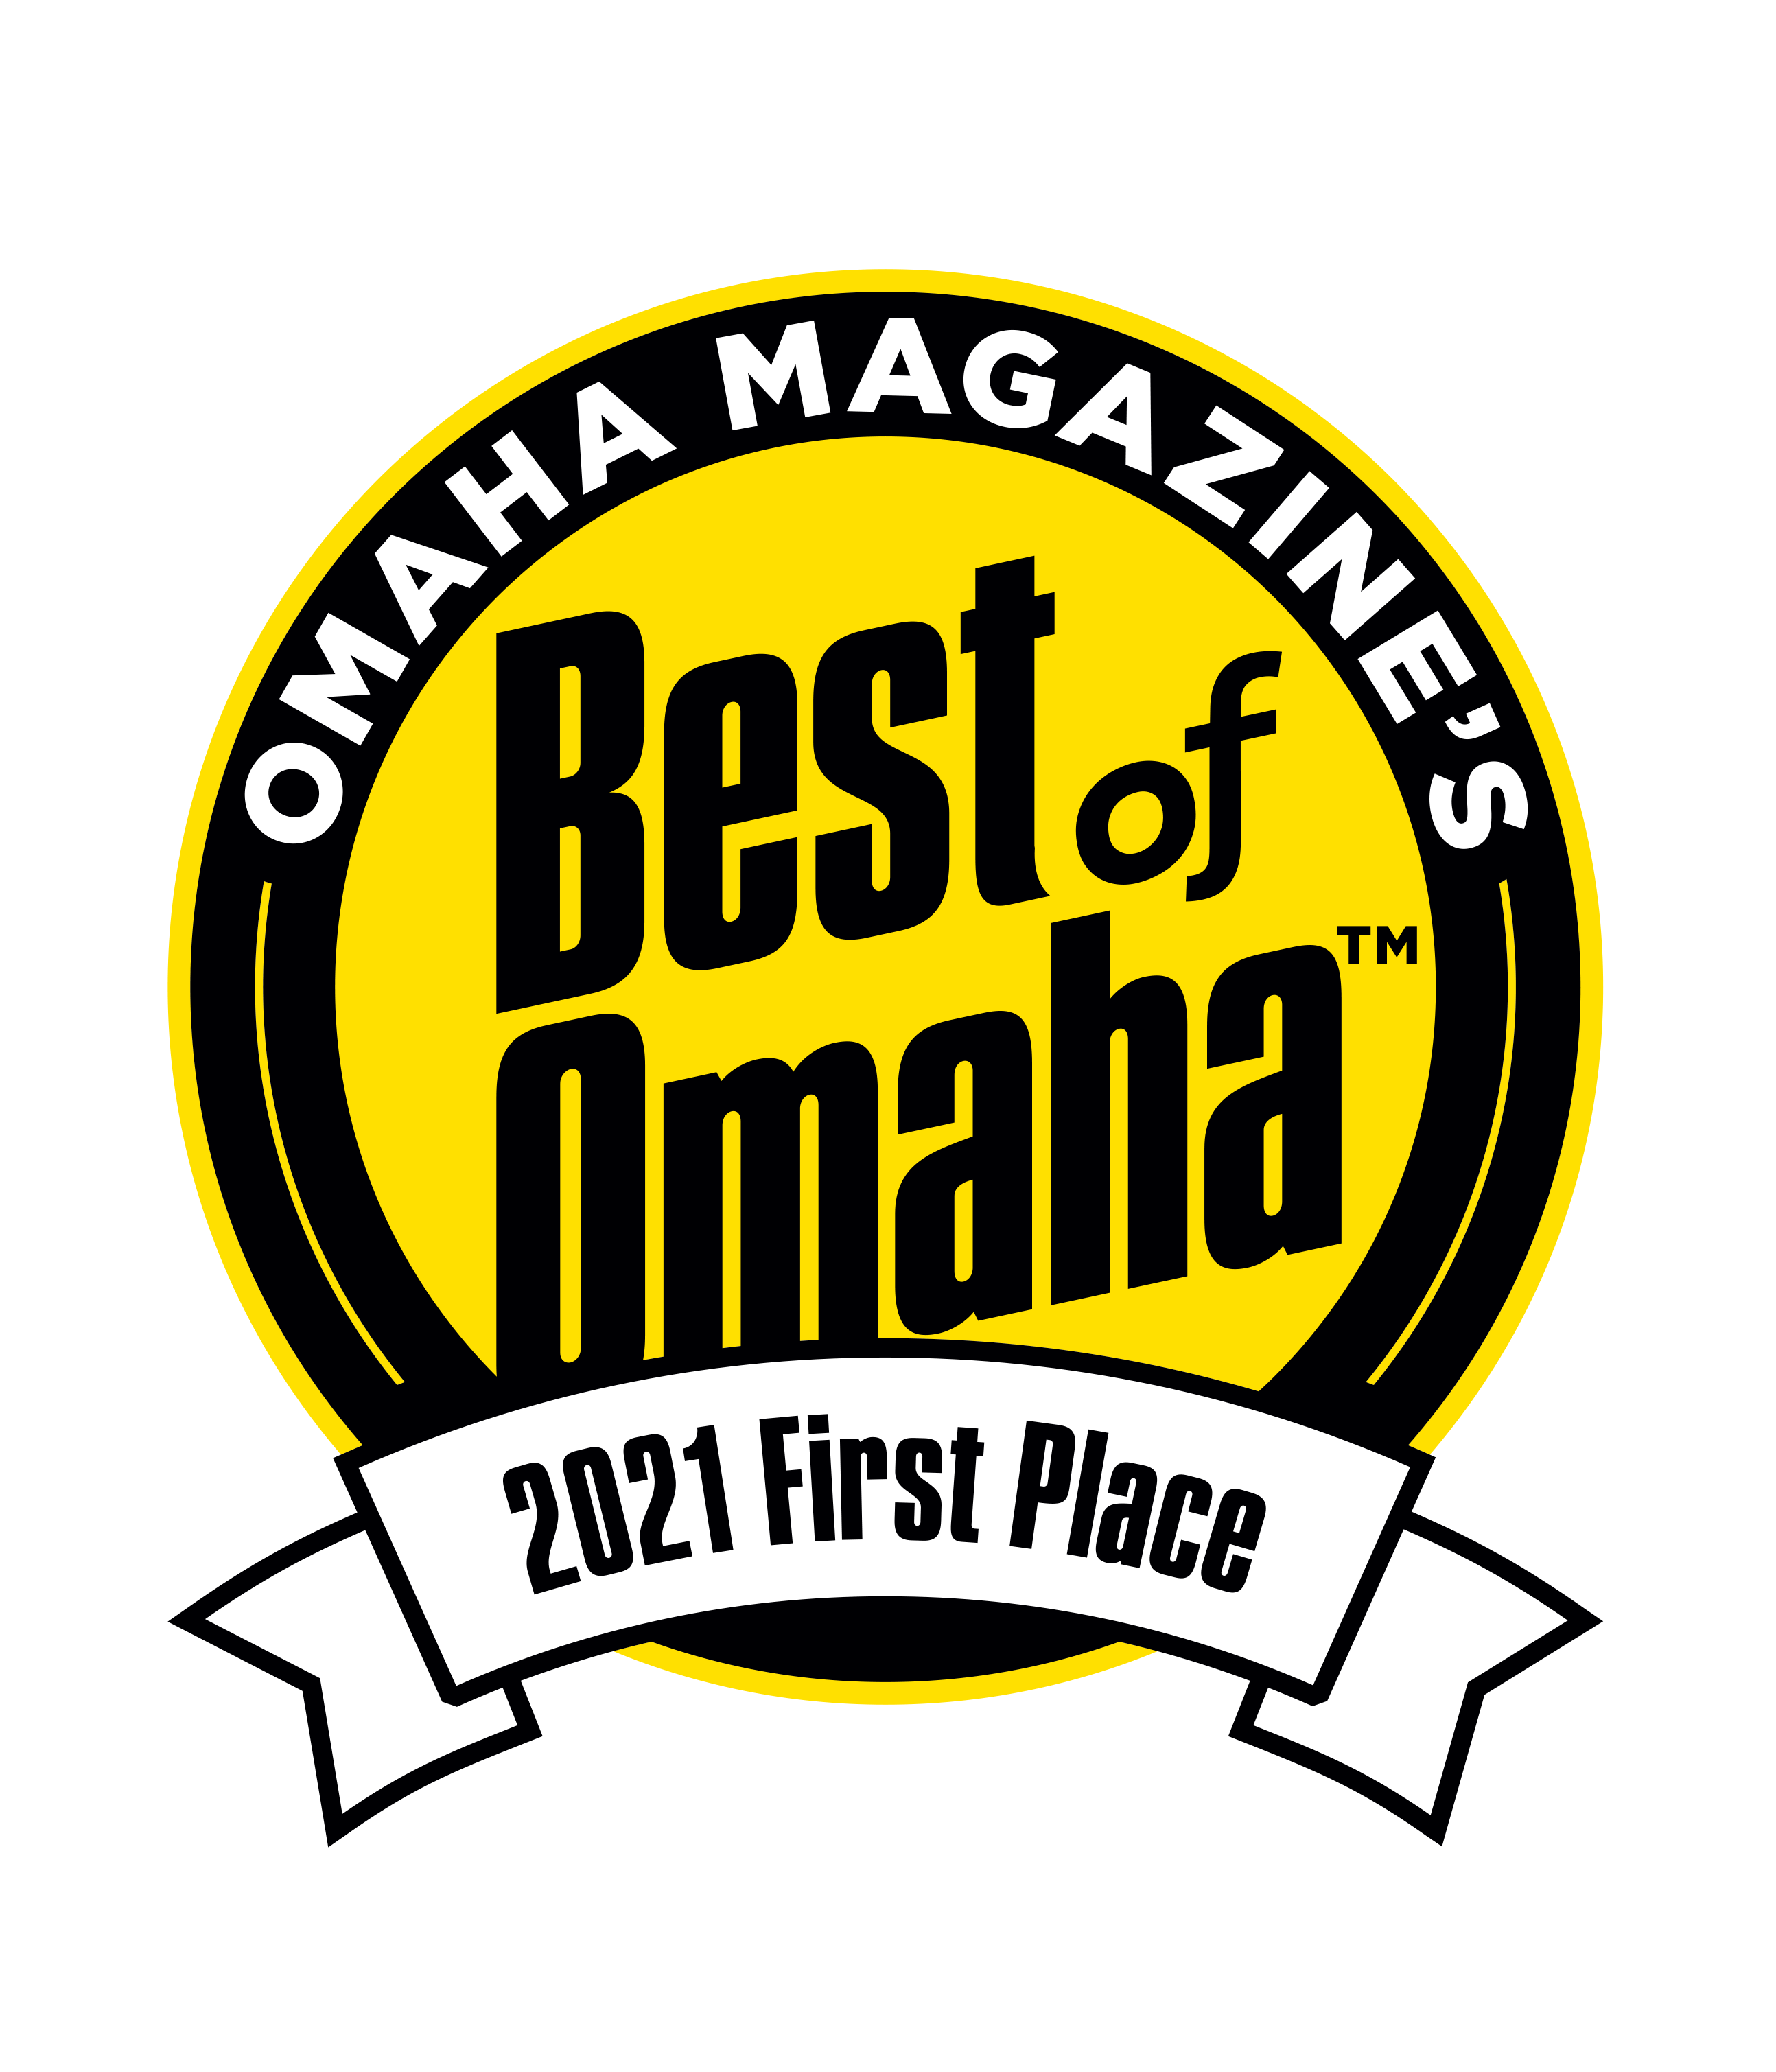 Counseling Services_FIRST_PLACE_WHITE